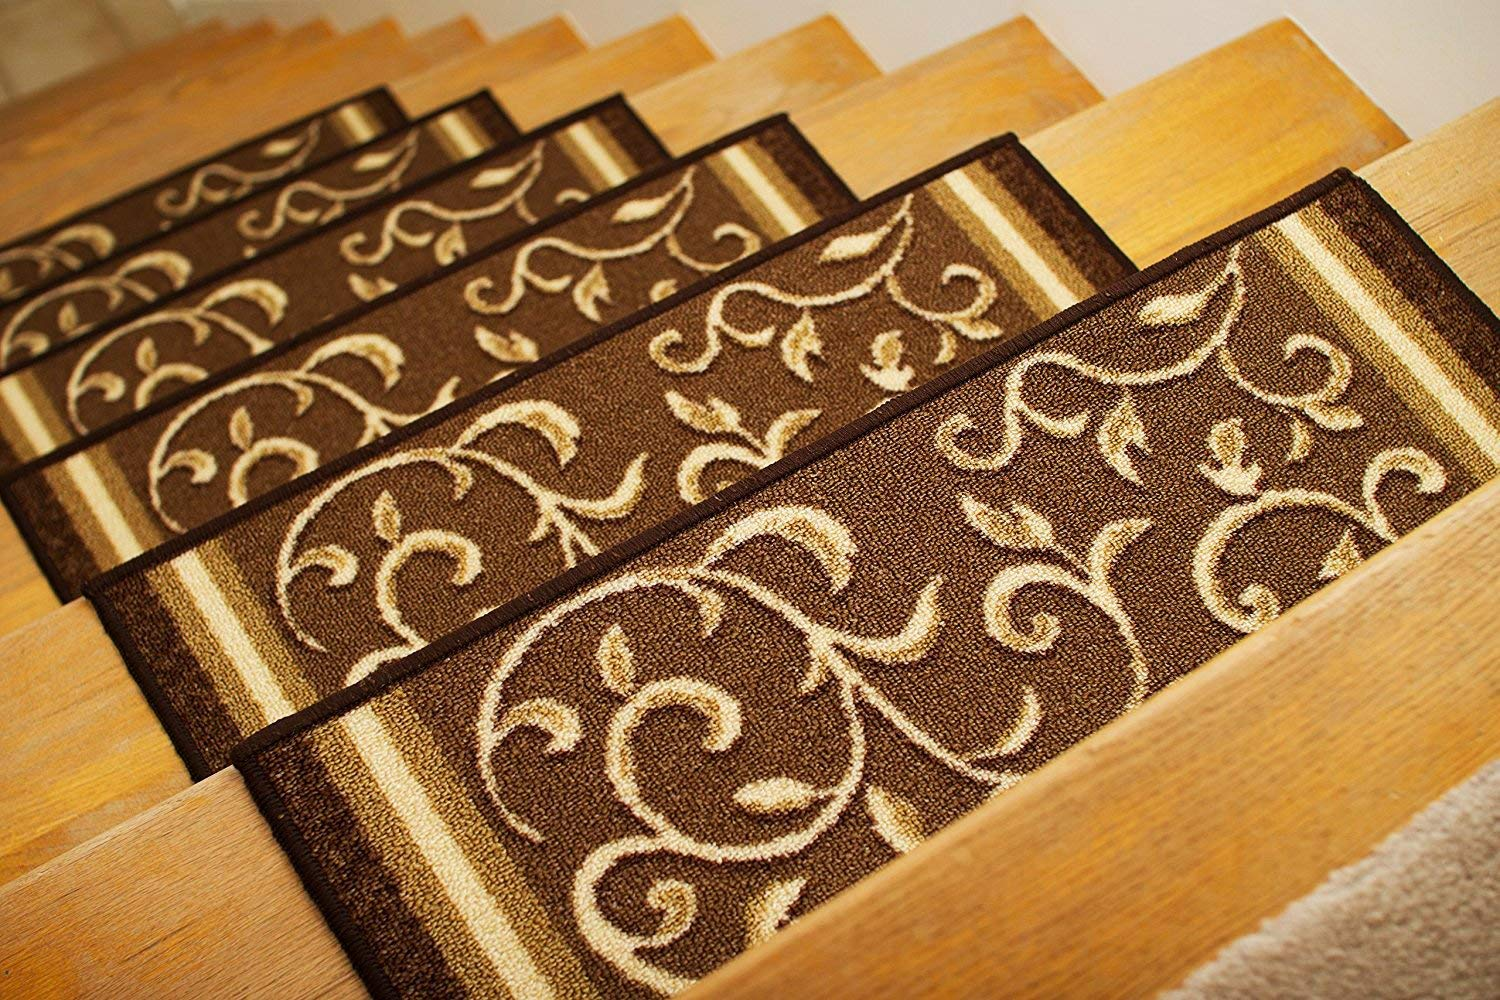 "Gloria Rug Skid-Resistant Rubber Backing Gripper Non-Slip Carpet Stair Treads - Washable Stair Mat Area Rug (SET OF 7), 8.5"" x 26"", Brown Floral Design"